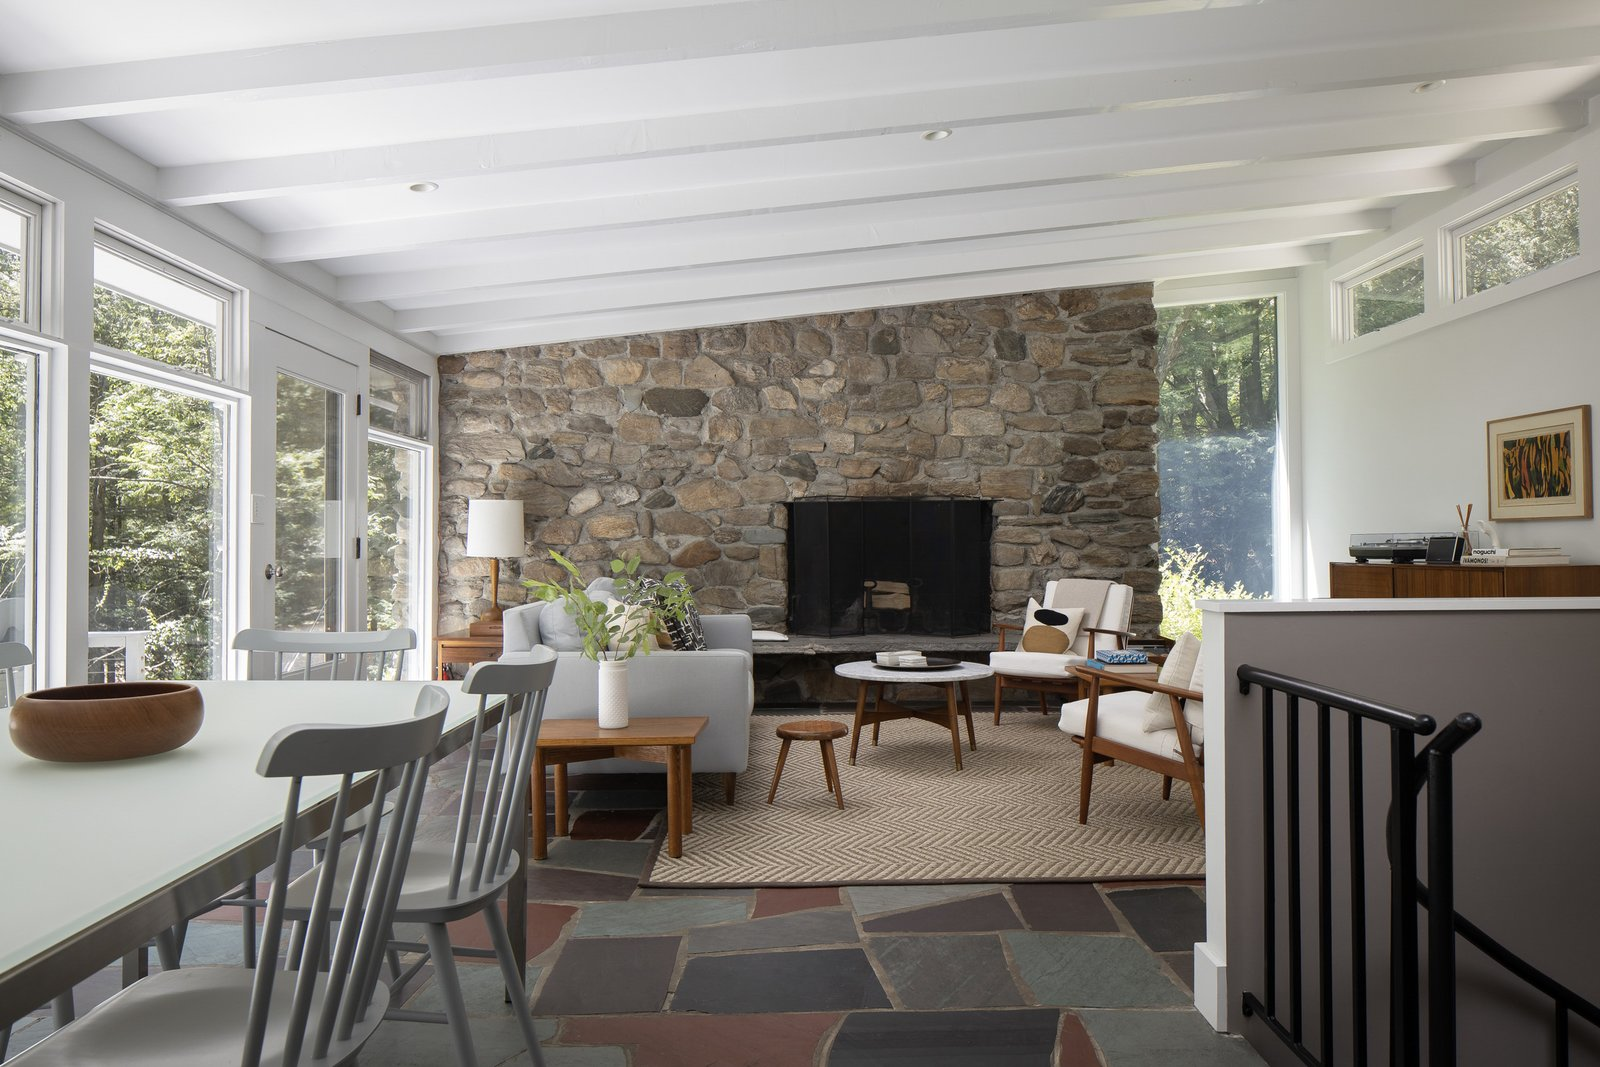 Inside, understated finishes allow the stone fireplace and floor-to-ceiling windows to stand out. Slate tiles line the floors while clerestory windows provide sunlight from the opposite direction.  Photo 2 of 15 in For $1.35M, Snag This Renovated Midcentury Retreat Nestled in a Hardwood Forest